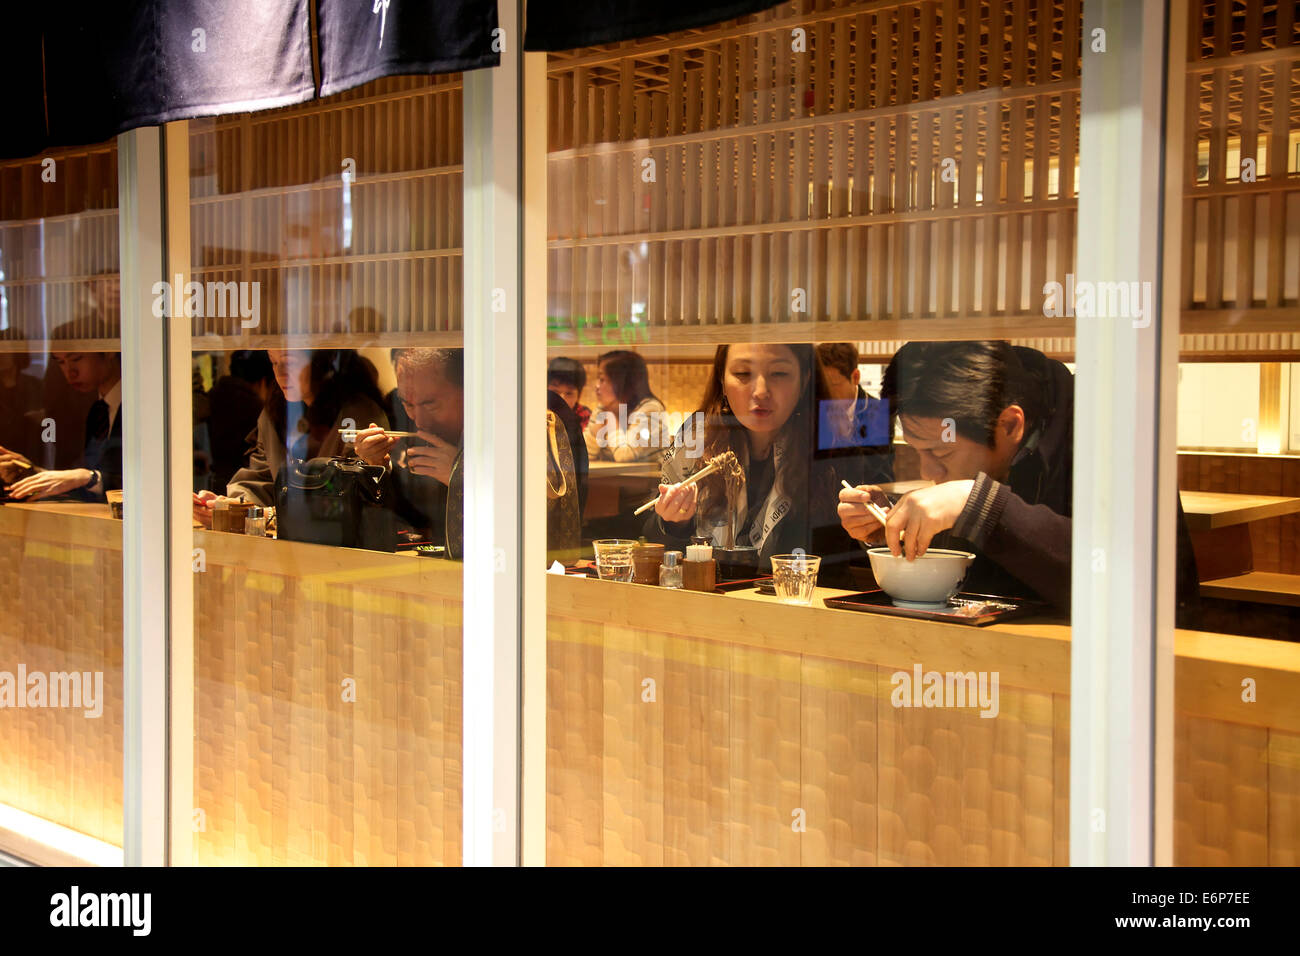 Japanese people eating noodle soup in restaurant. Tokyo, Japan, Asia - Stock Image